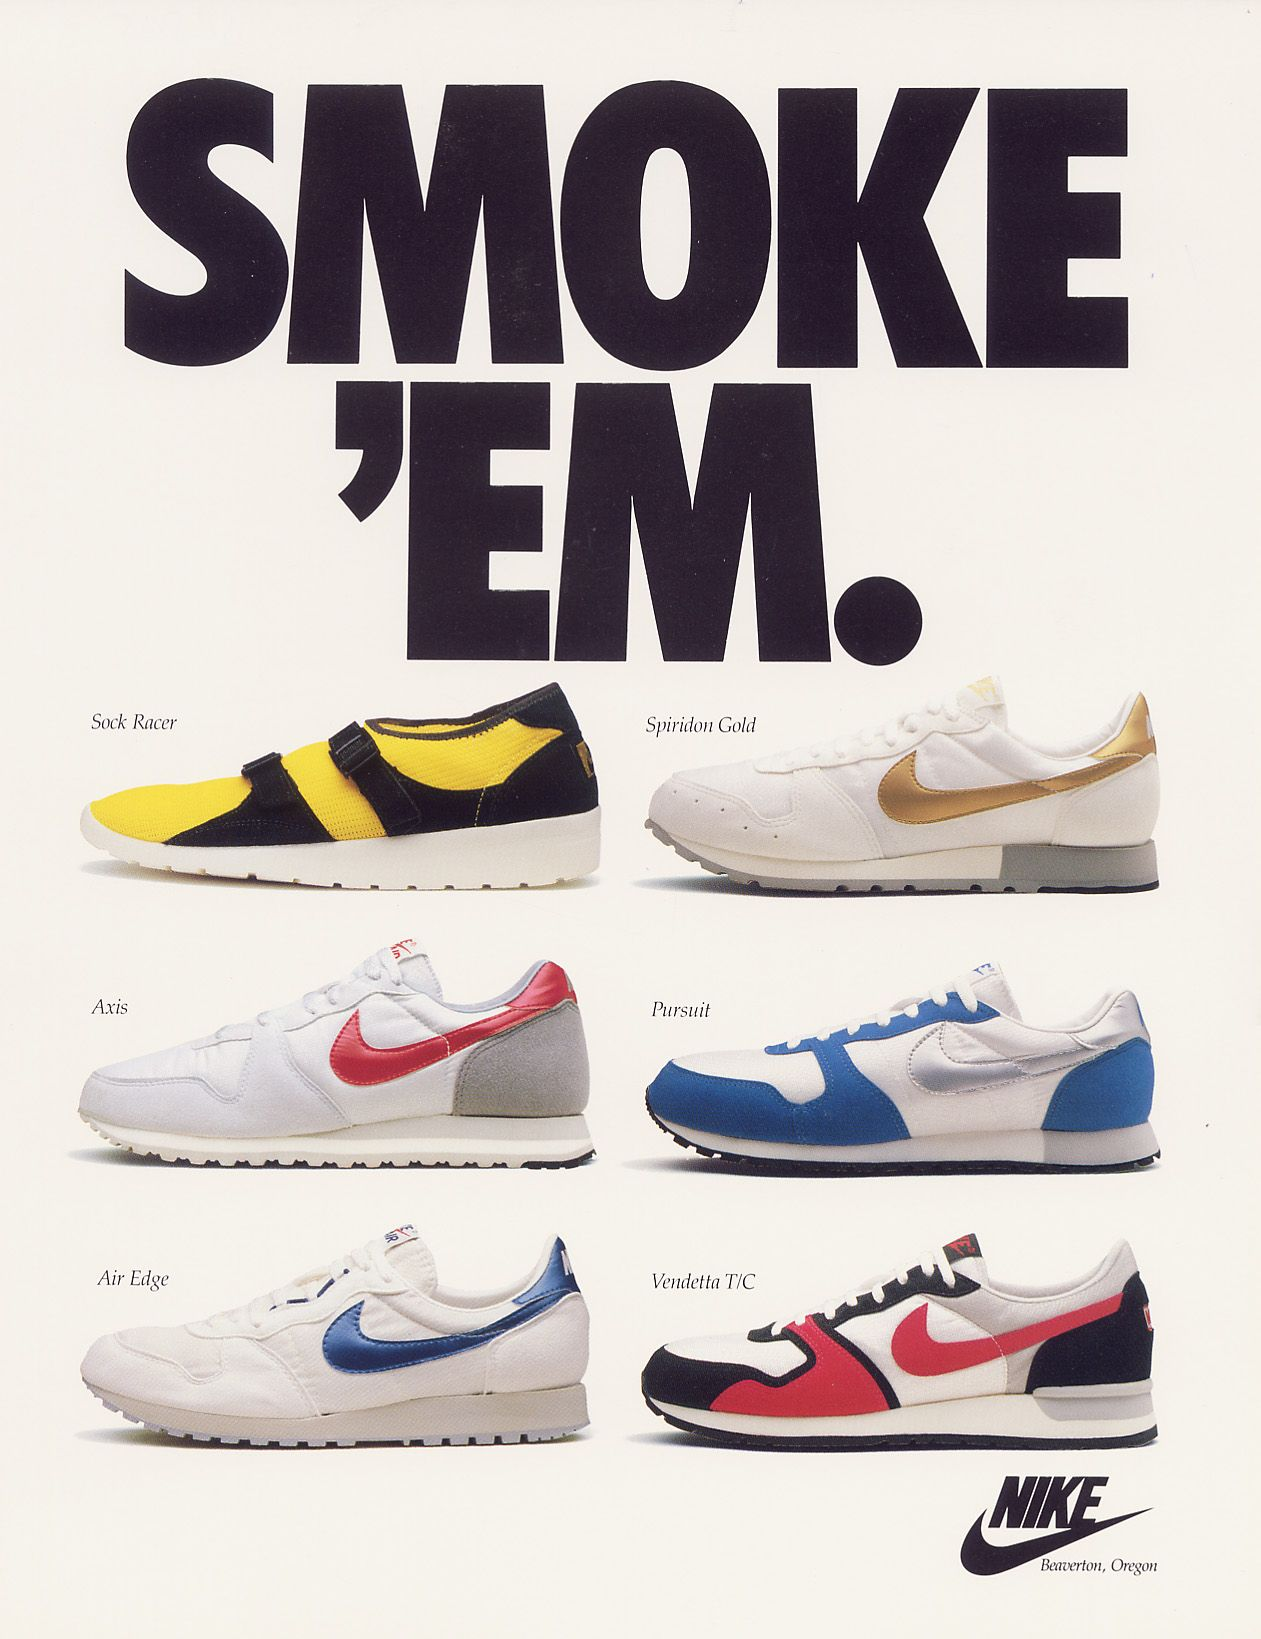 Nike Light Weight Ad From June 1986 Feat The Brand S Racing Shoes Nike Ad Vintage Nike Nike Poster